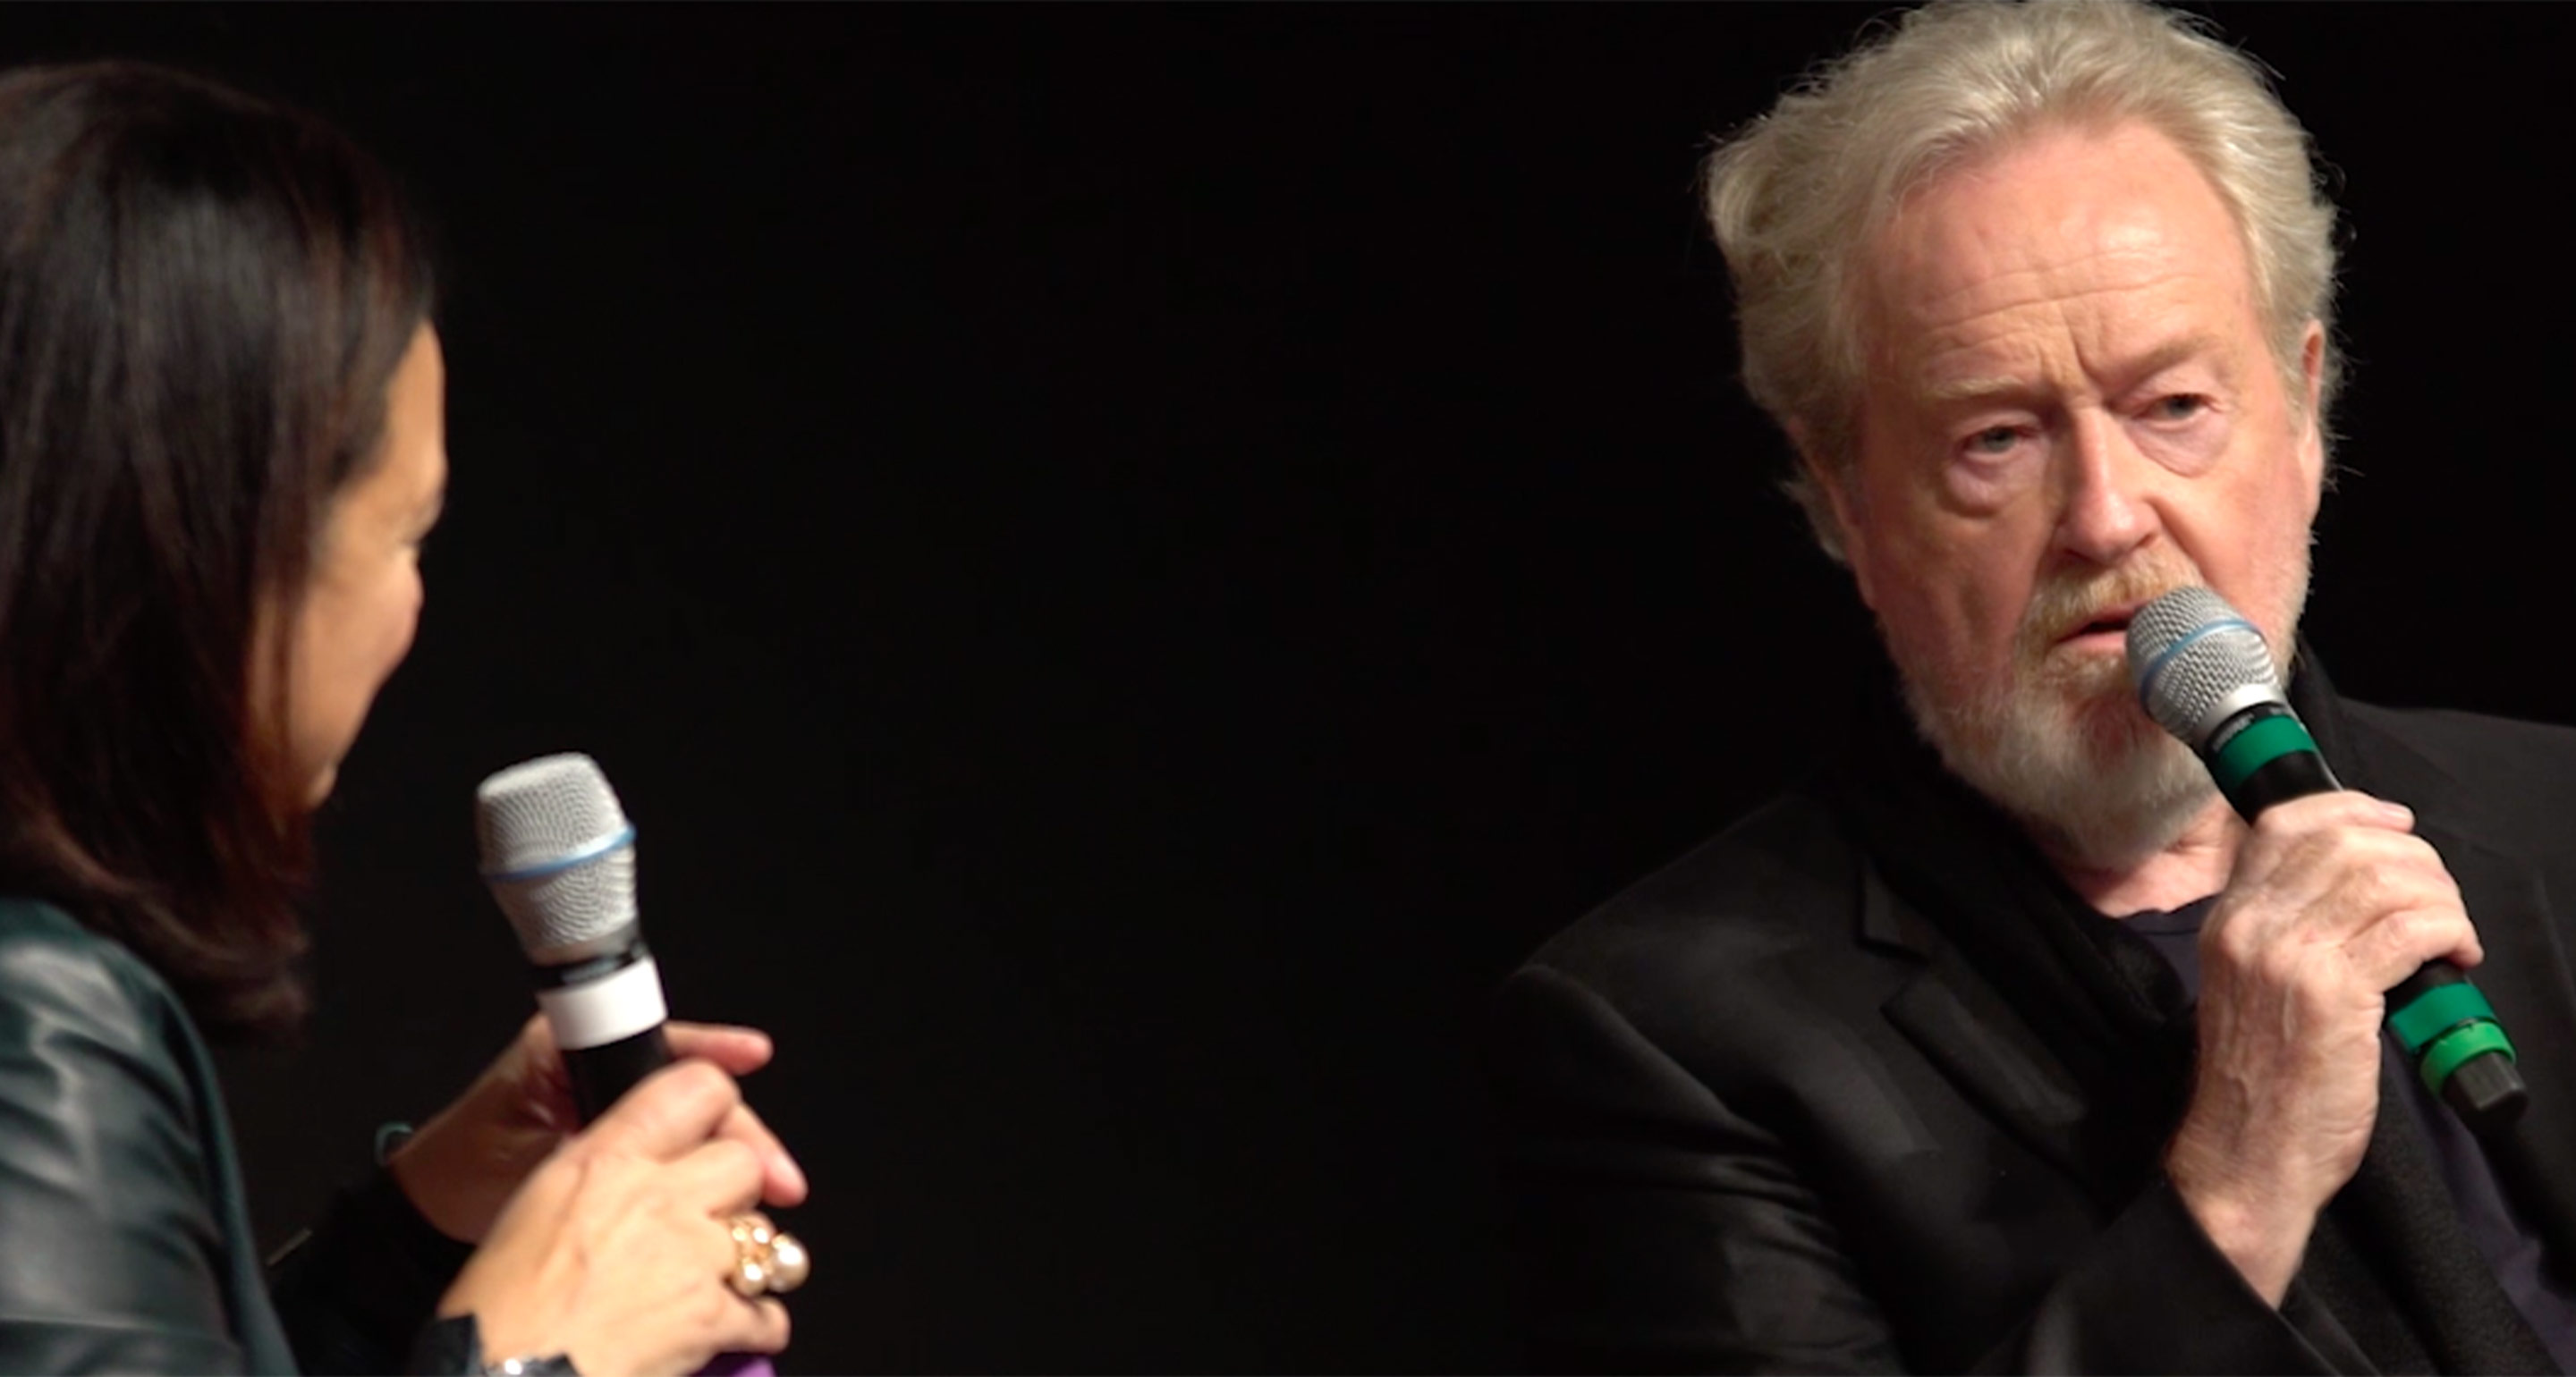 Sir Ridley Scott shares his vision of creativity